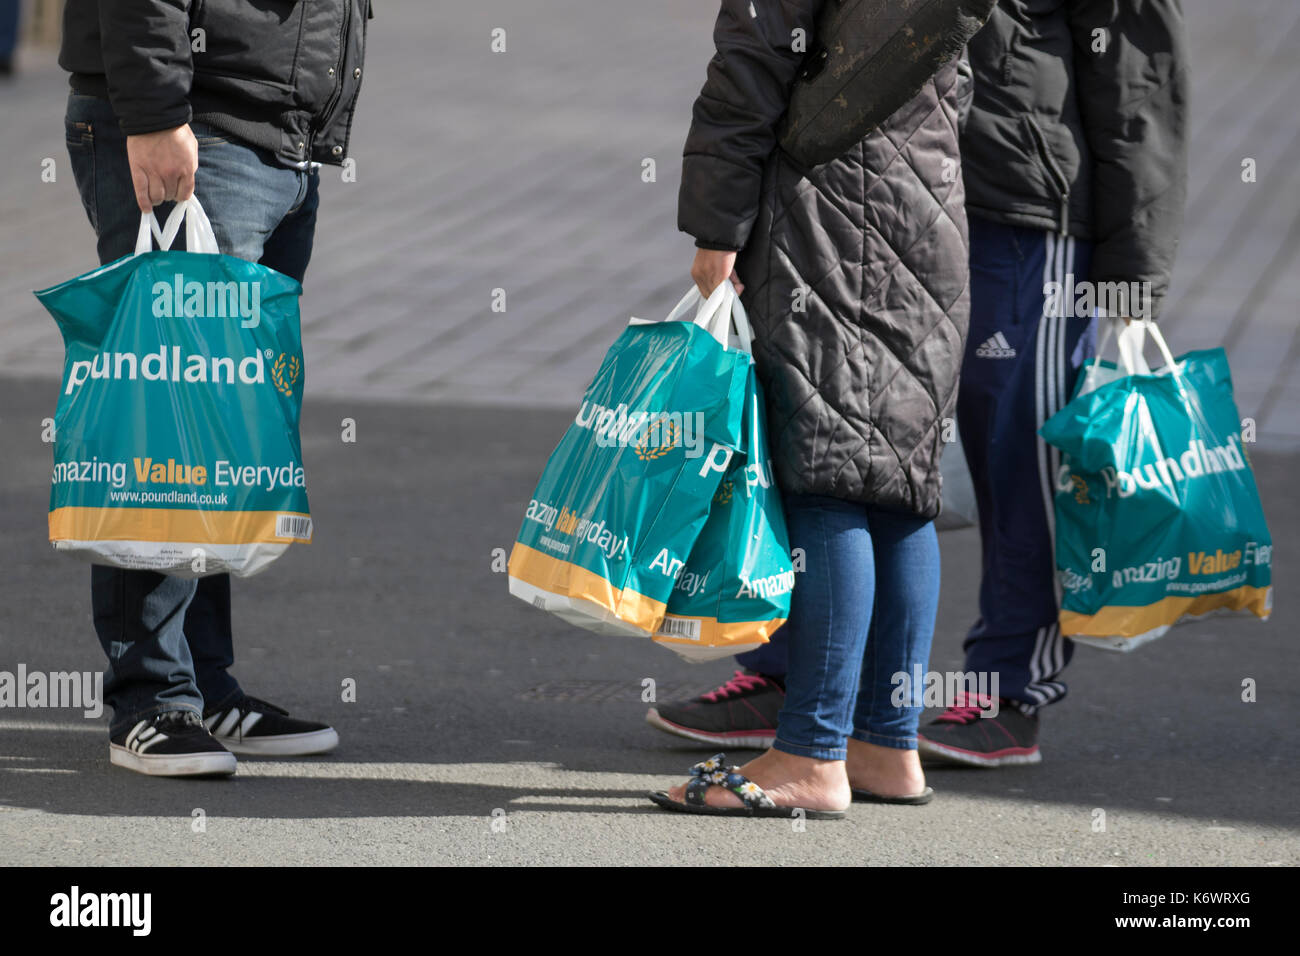 Shoppers with bafs from the Discount retail chain Poundland selling groceries, toiletries, cleaning products and more, all for £1. Blackpool, UK - Stock Image